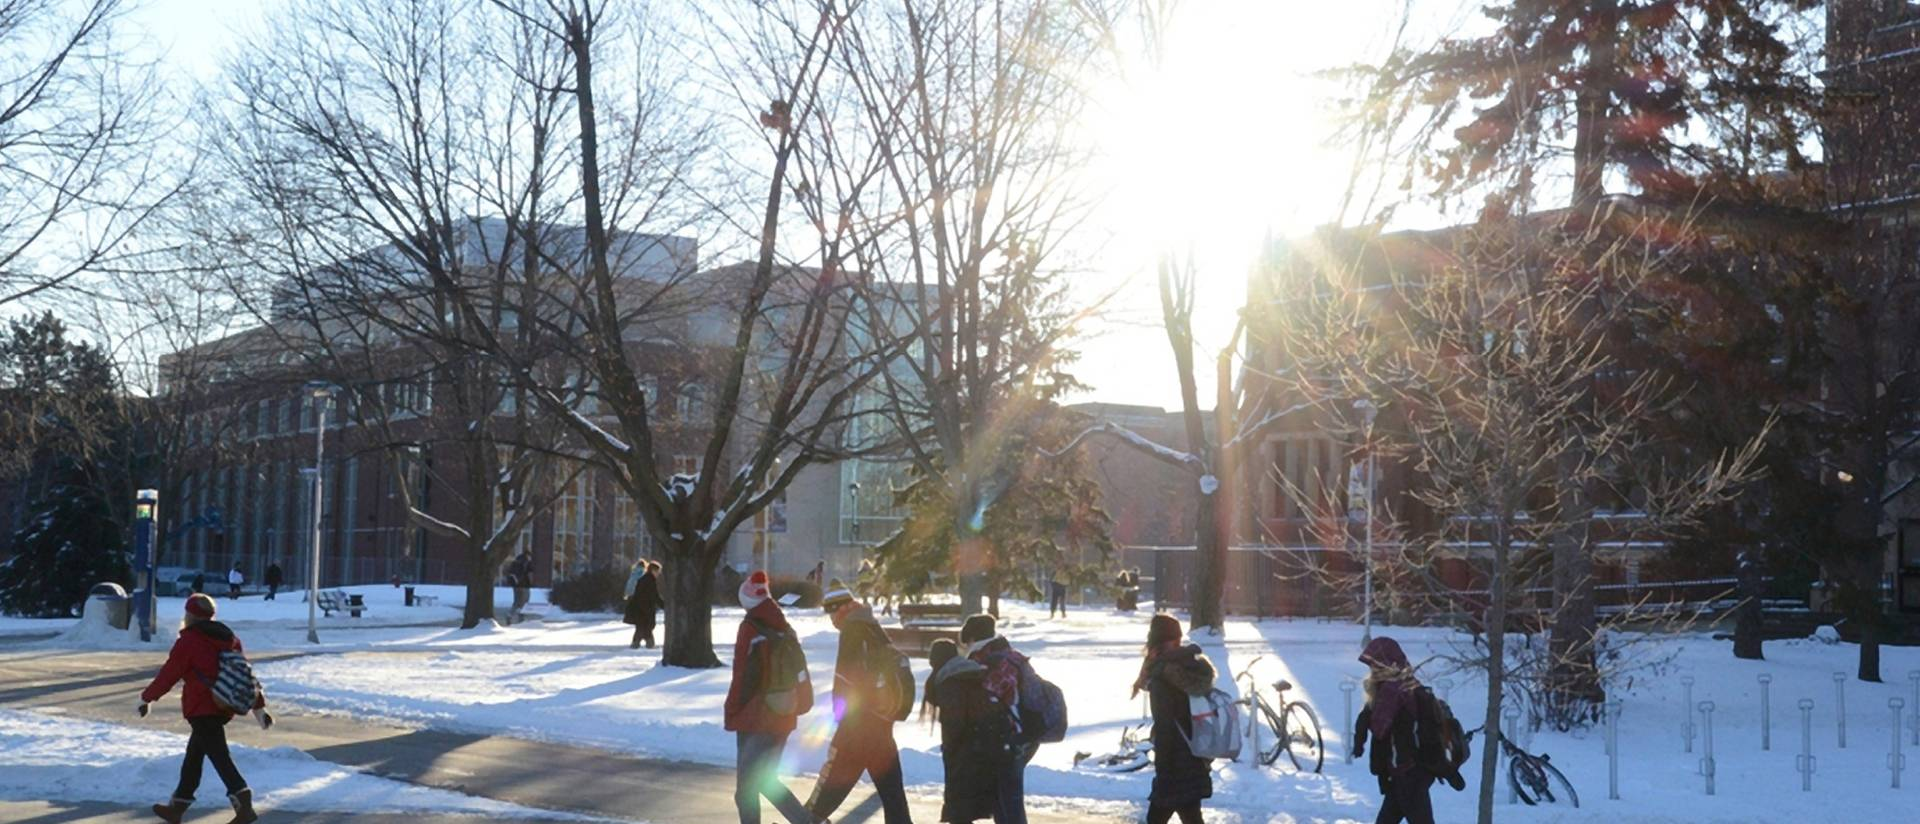 Students walking on campus in winter.